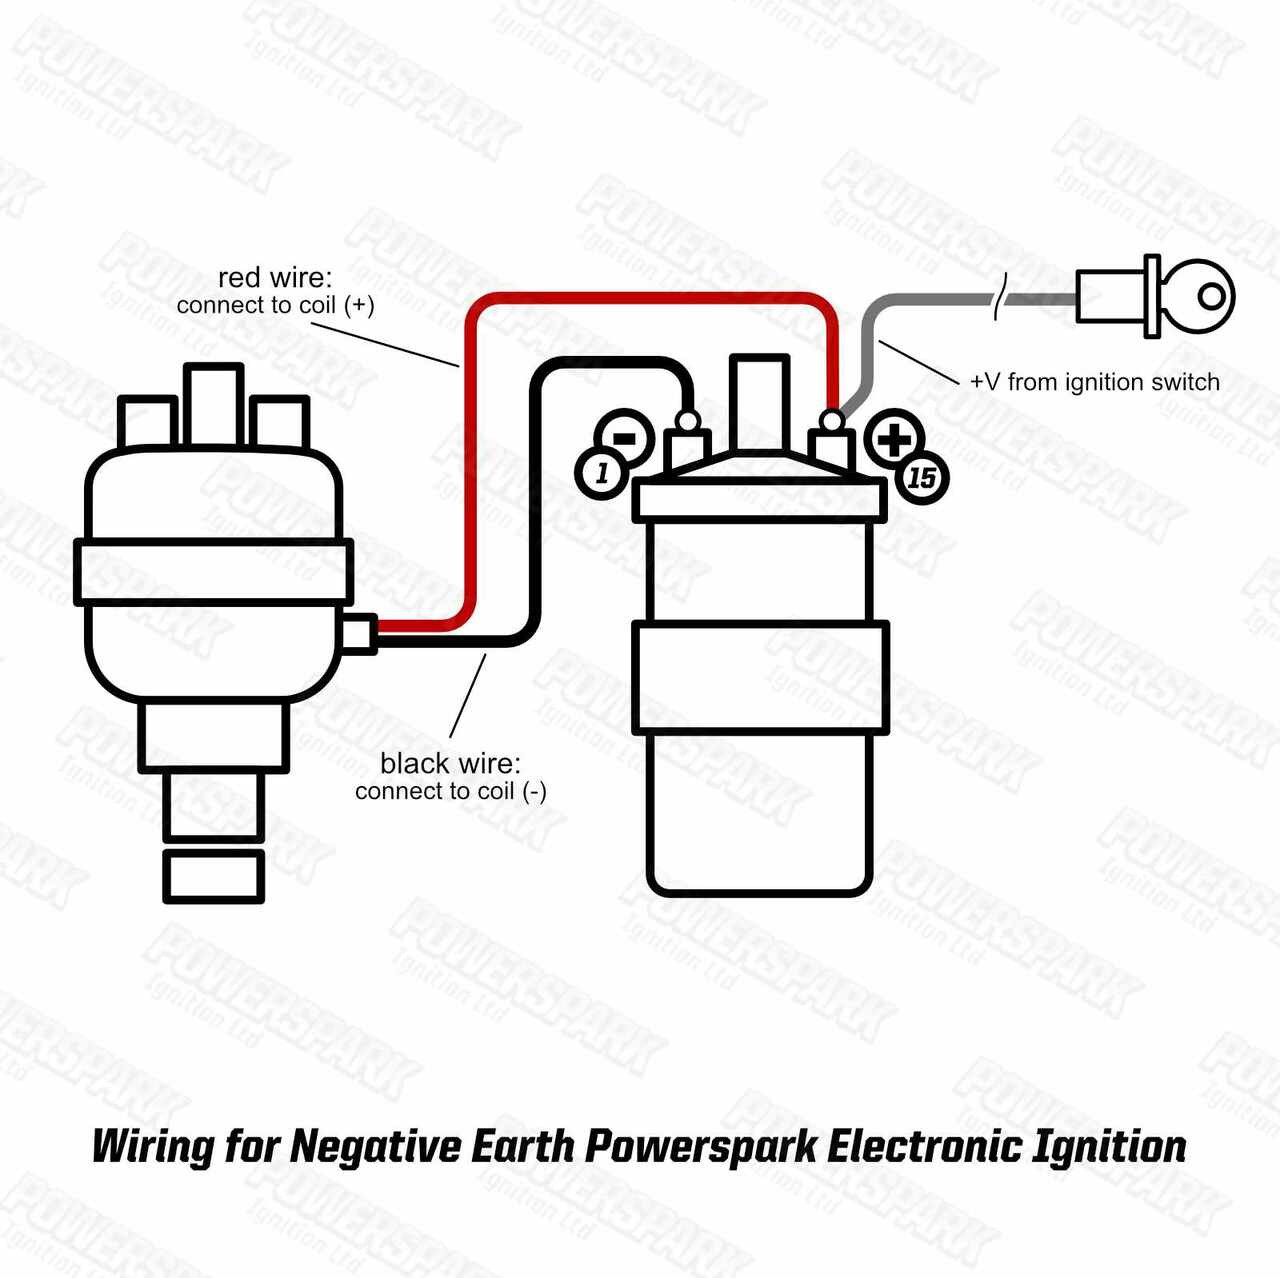 Powerspark Powerspark Electronic Ignition Kit for Ducellier Distributor K8